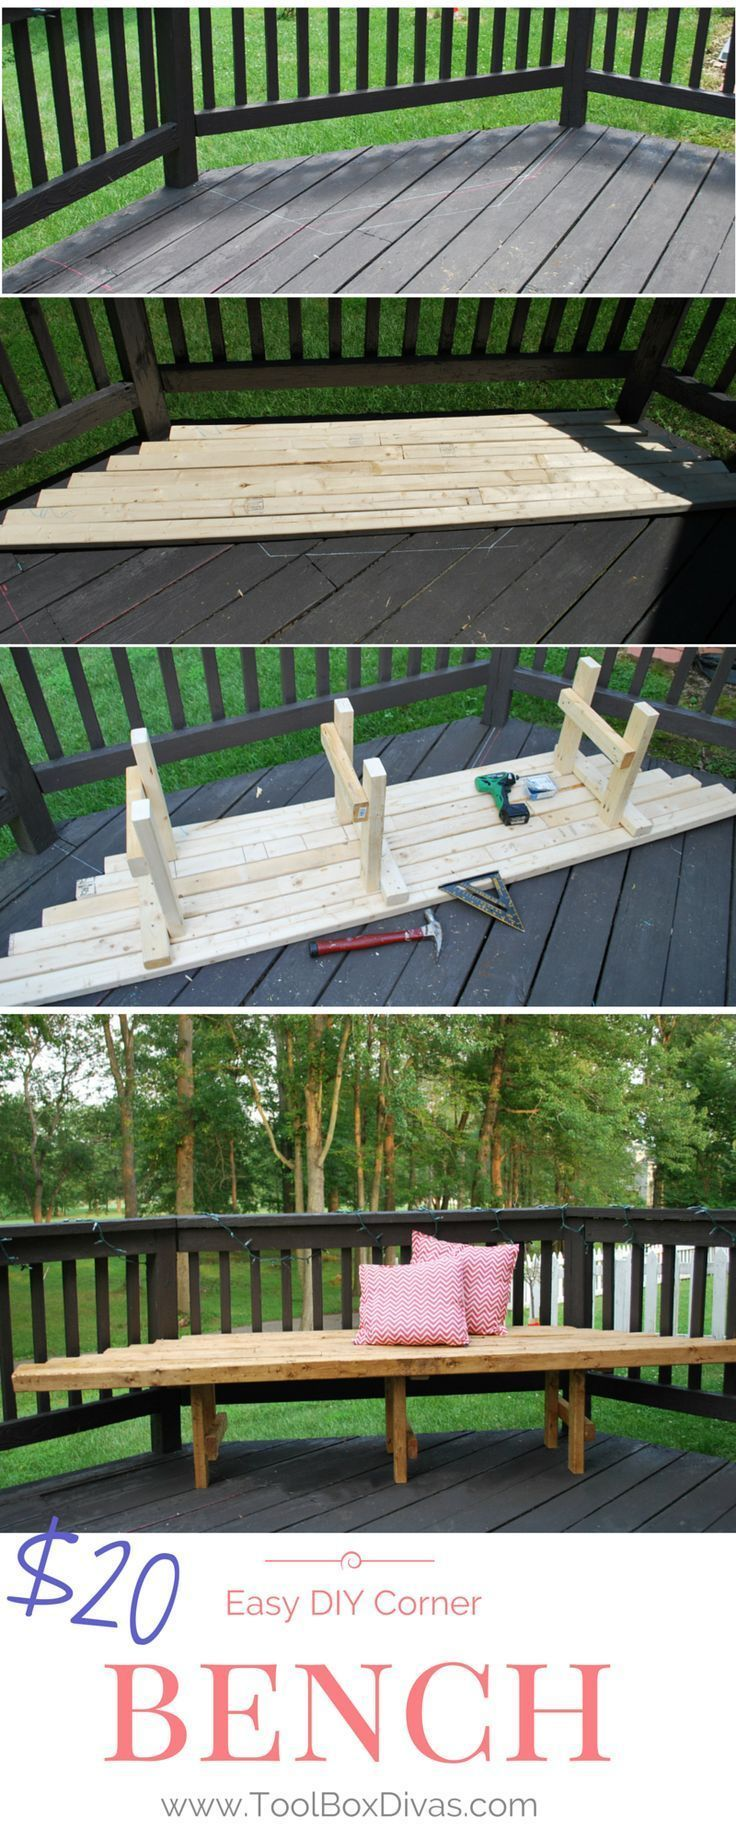 Need Outdoor Seating? Make Your Own Seating With These Super Simple Build  Plans.